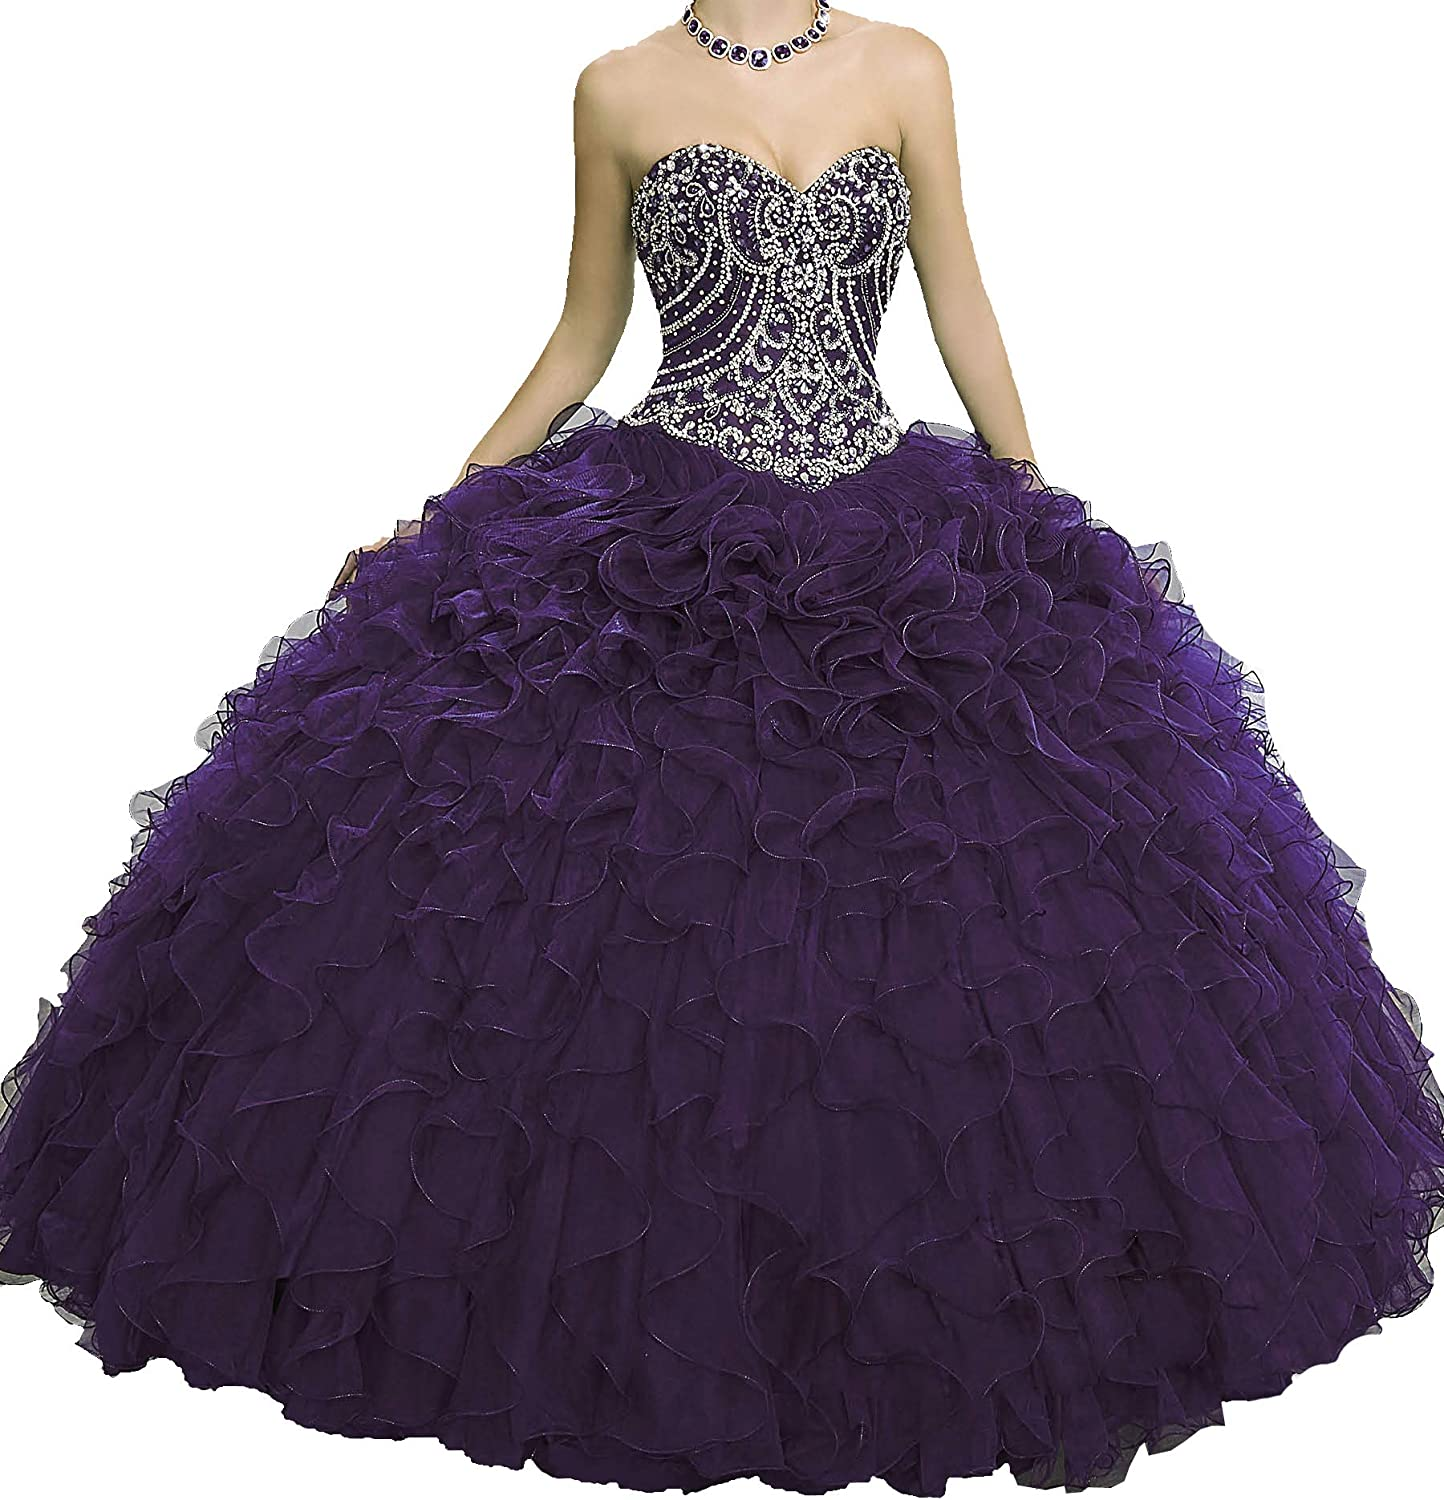 Yang Women Sweetheart Quinceanera Dress Floor Length Girls Ball Gowns